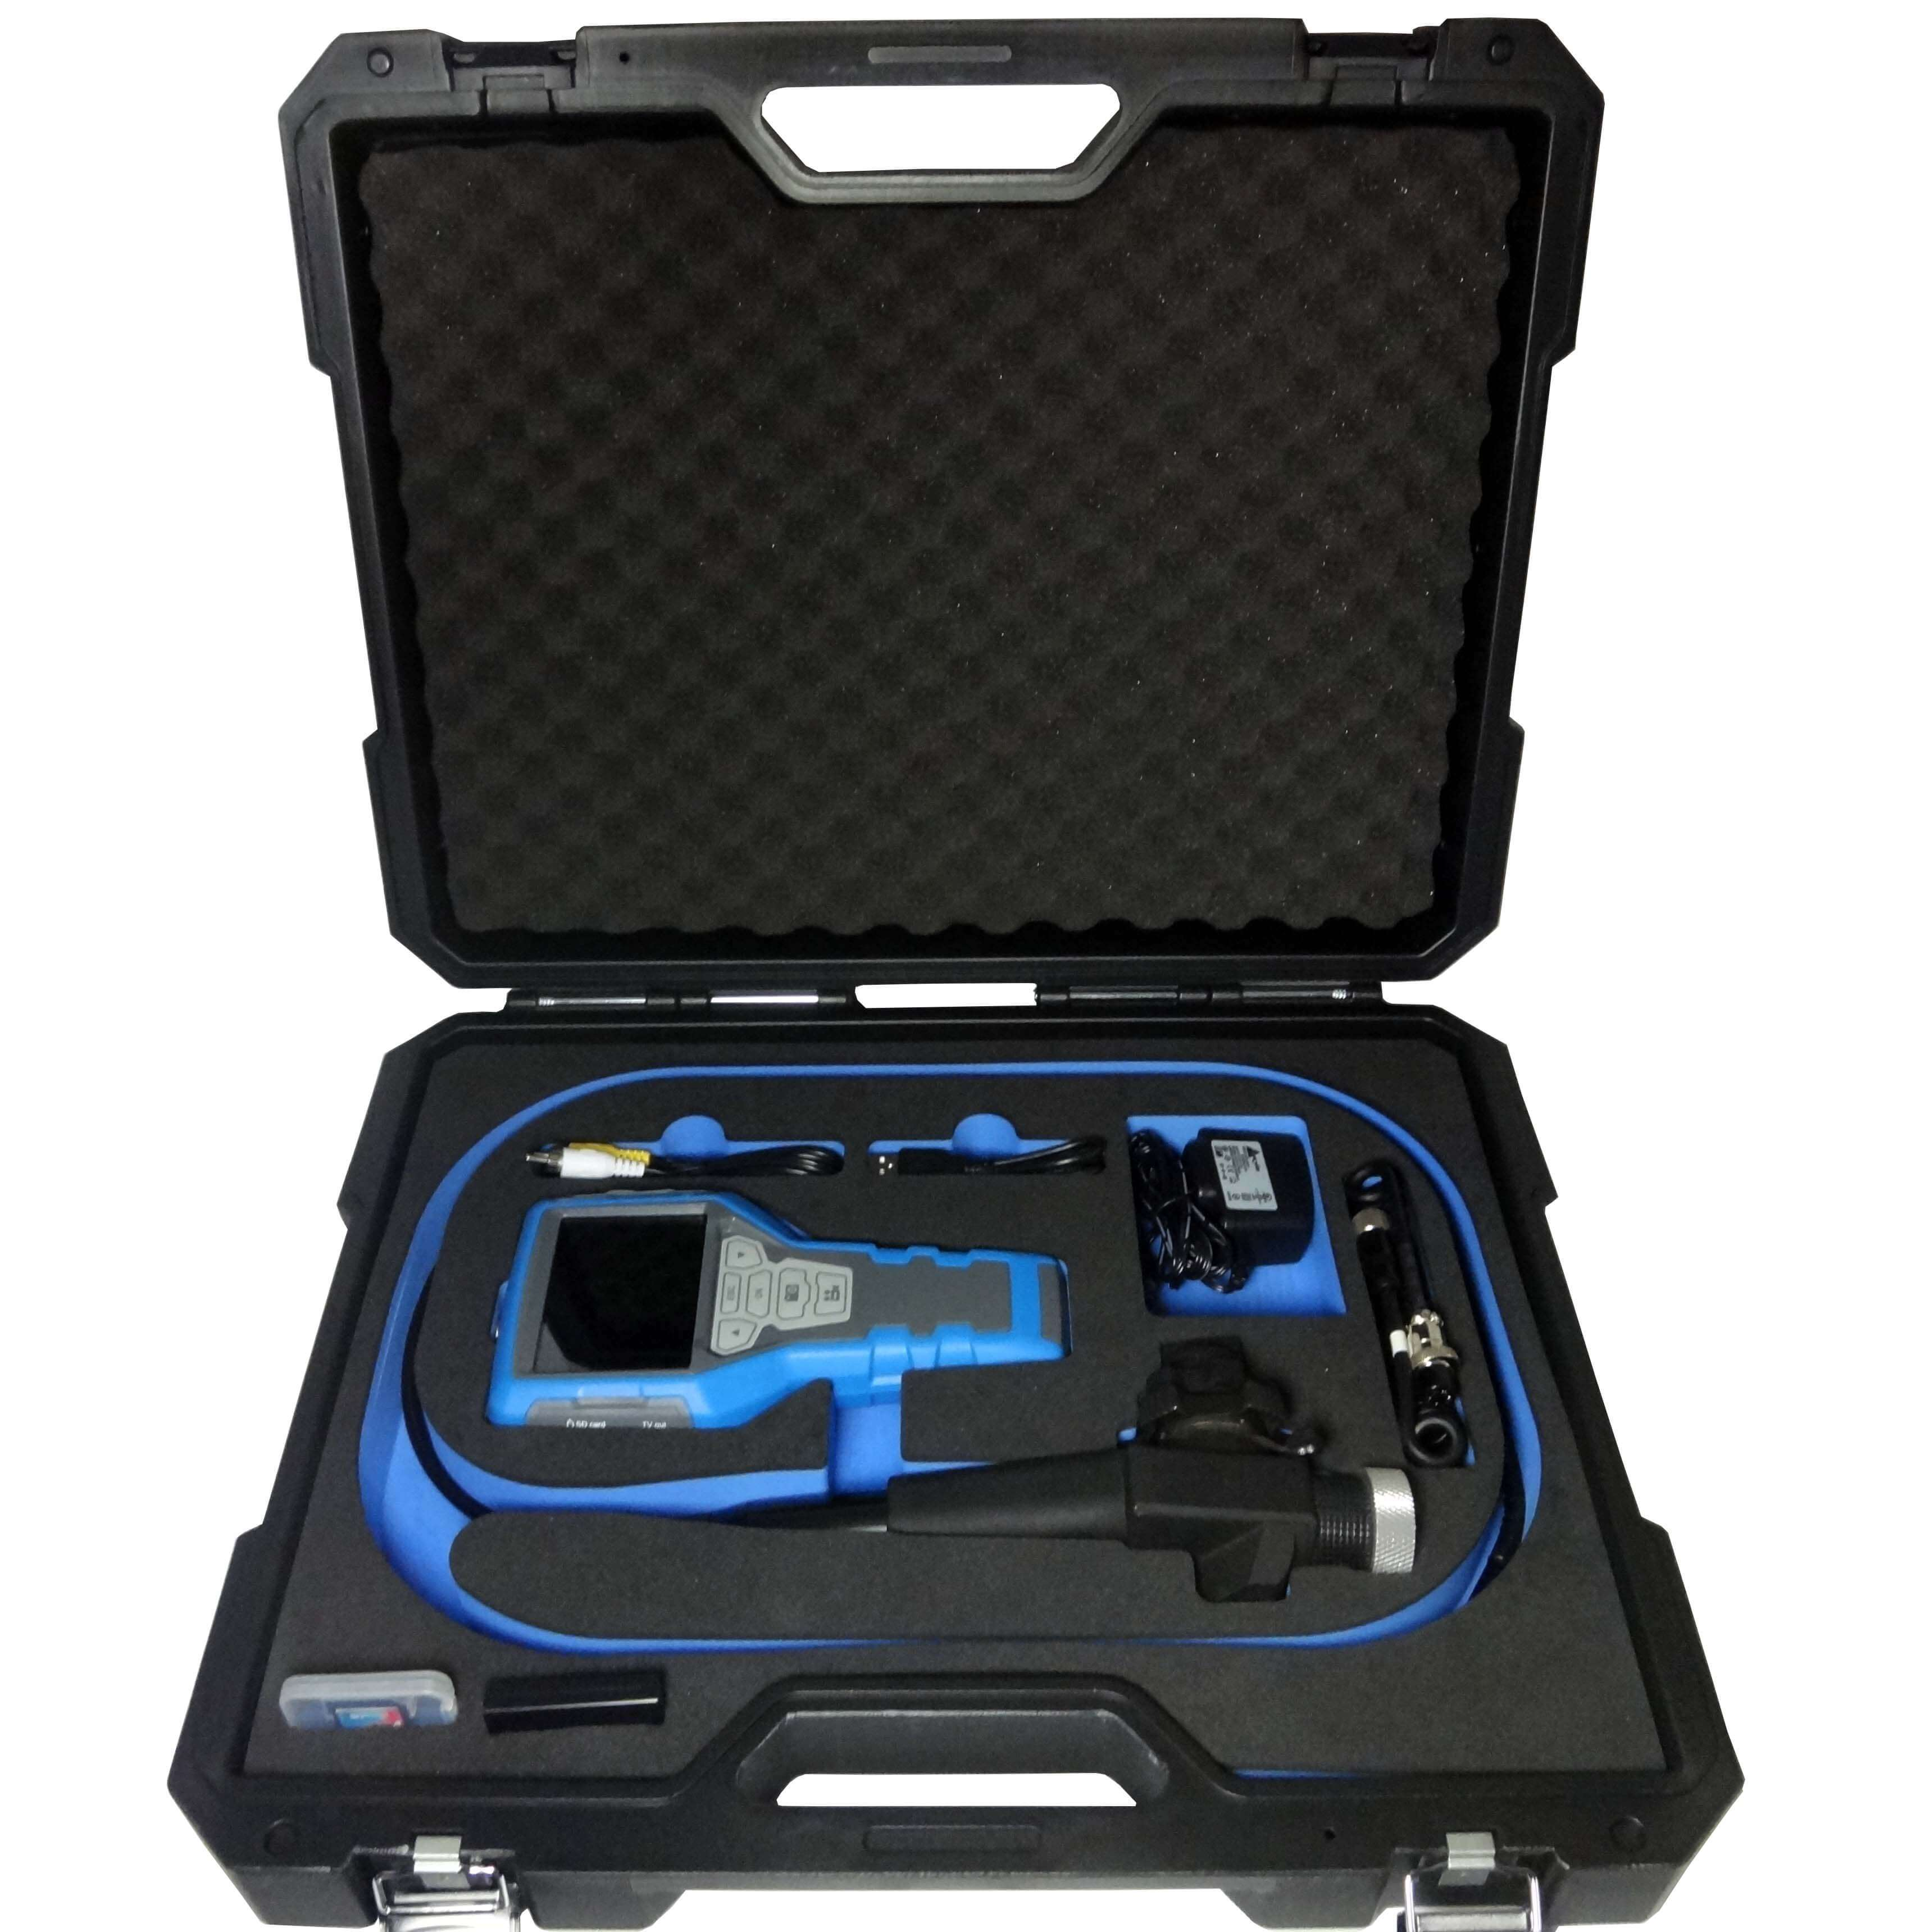 2 Way Articulation Borescope (TX101-2A62)